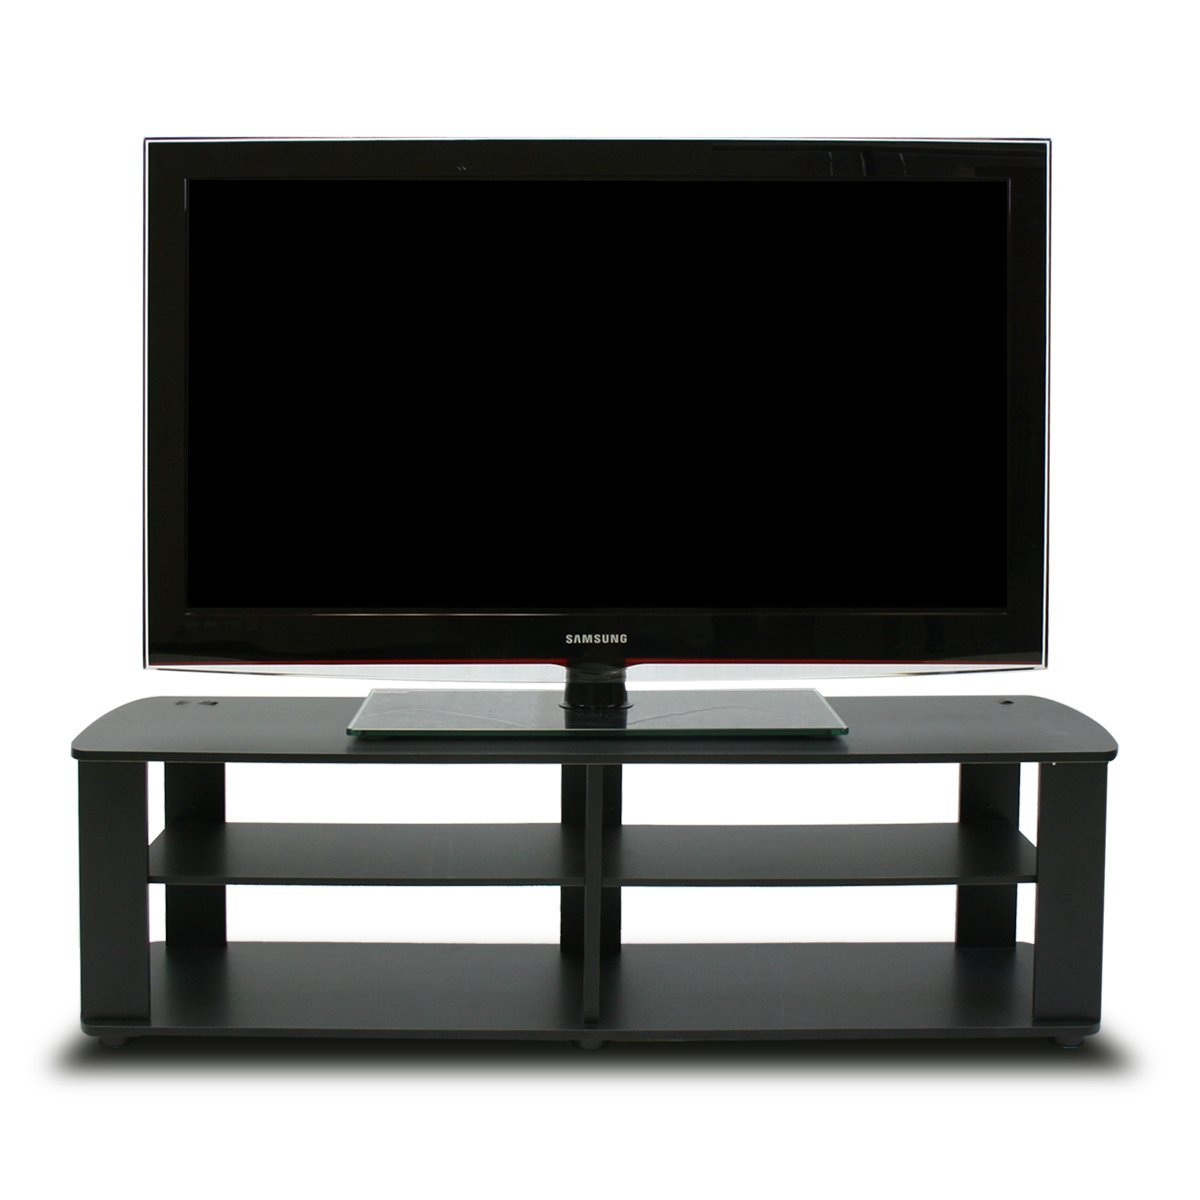 furniture  rug abc warehouse tvs on sale  sauder tv stands  - abc warehouse tvs on sale  sauder tv stands  television stands at target